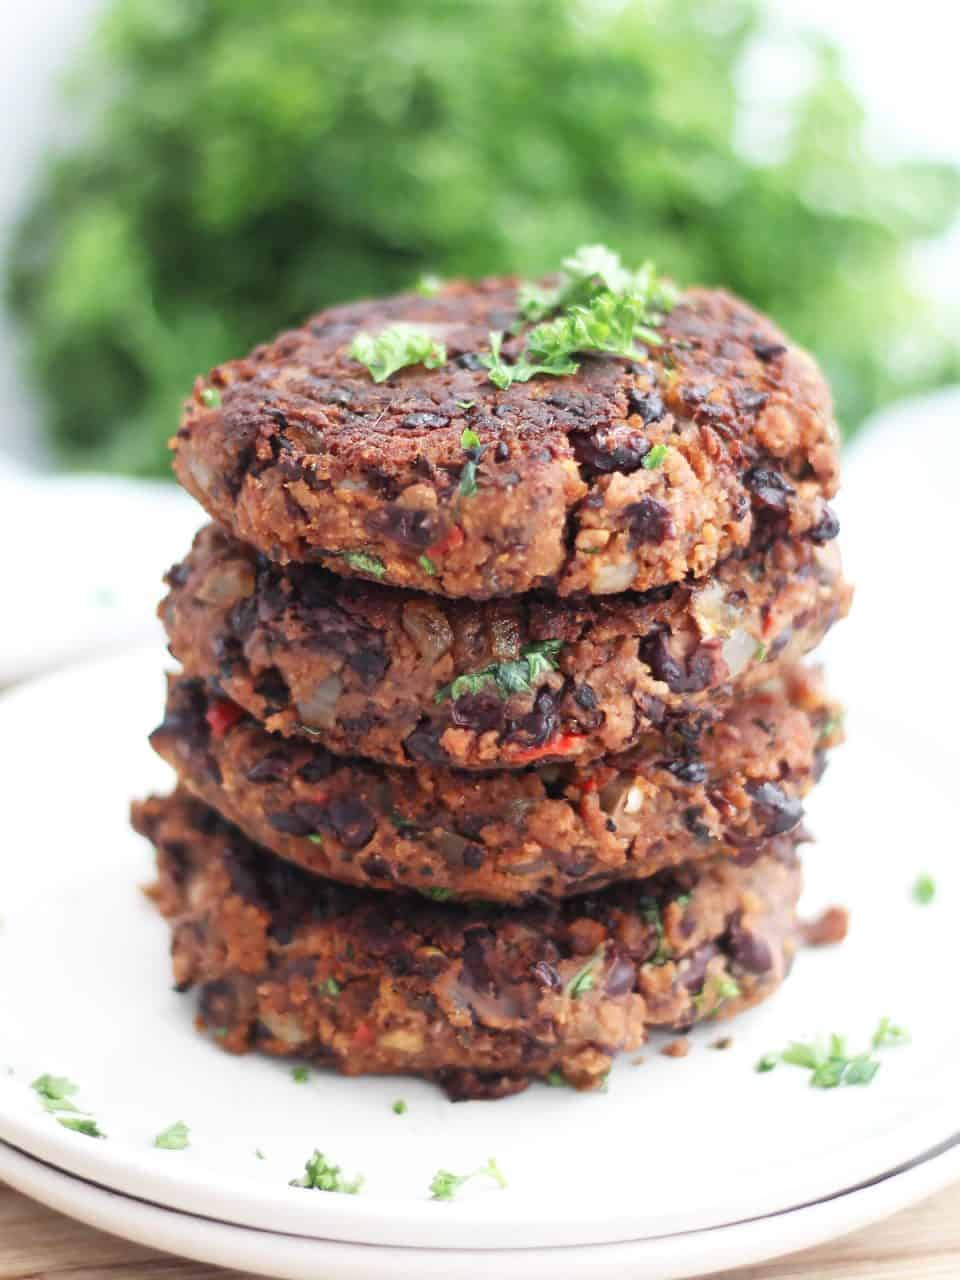 Four burger patties stacked on top of each other with parsley garnish.